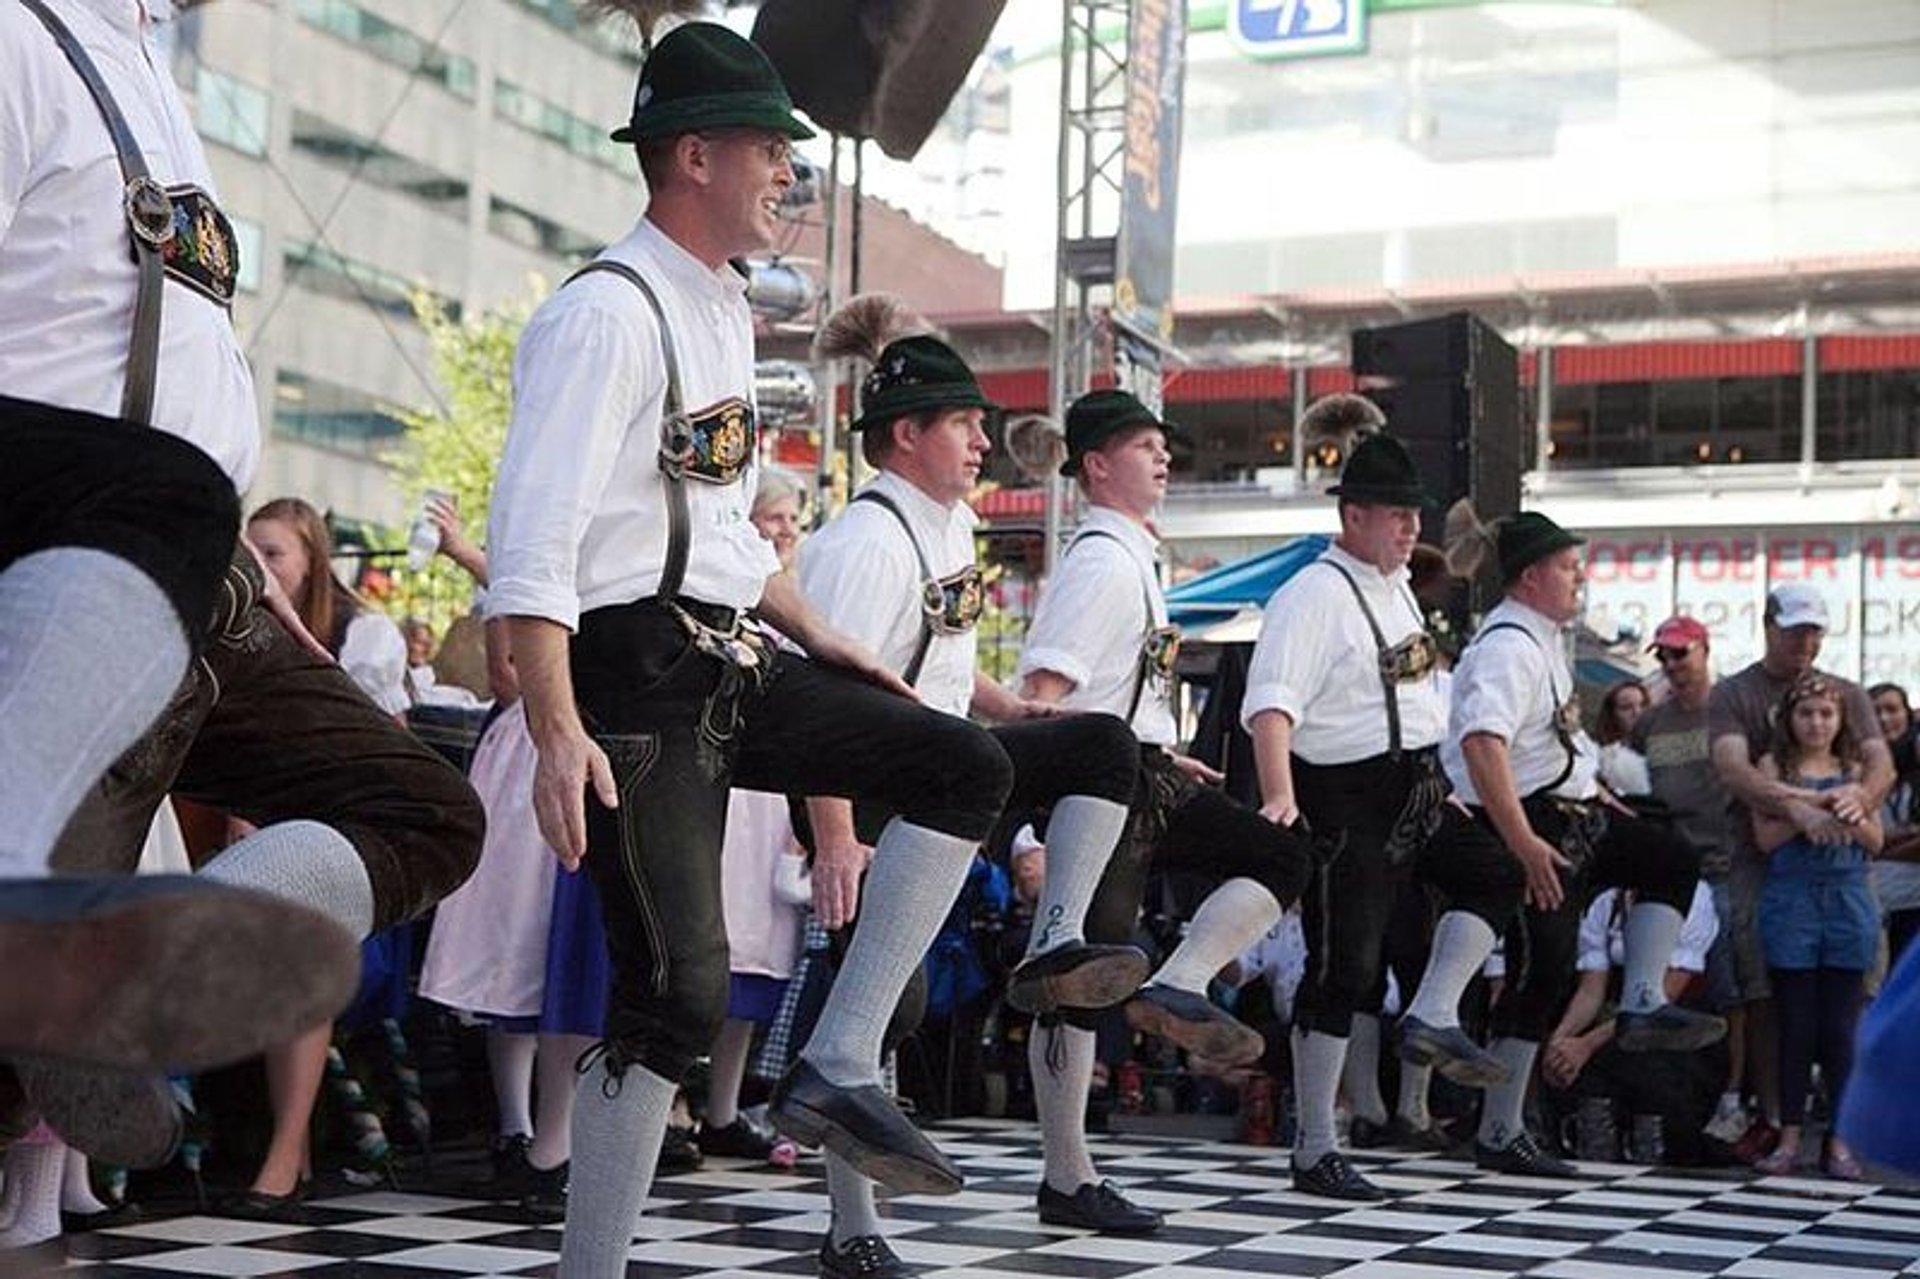 Oktoberfest Zinzinnati in Midwest 2020 - Best Time